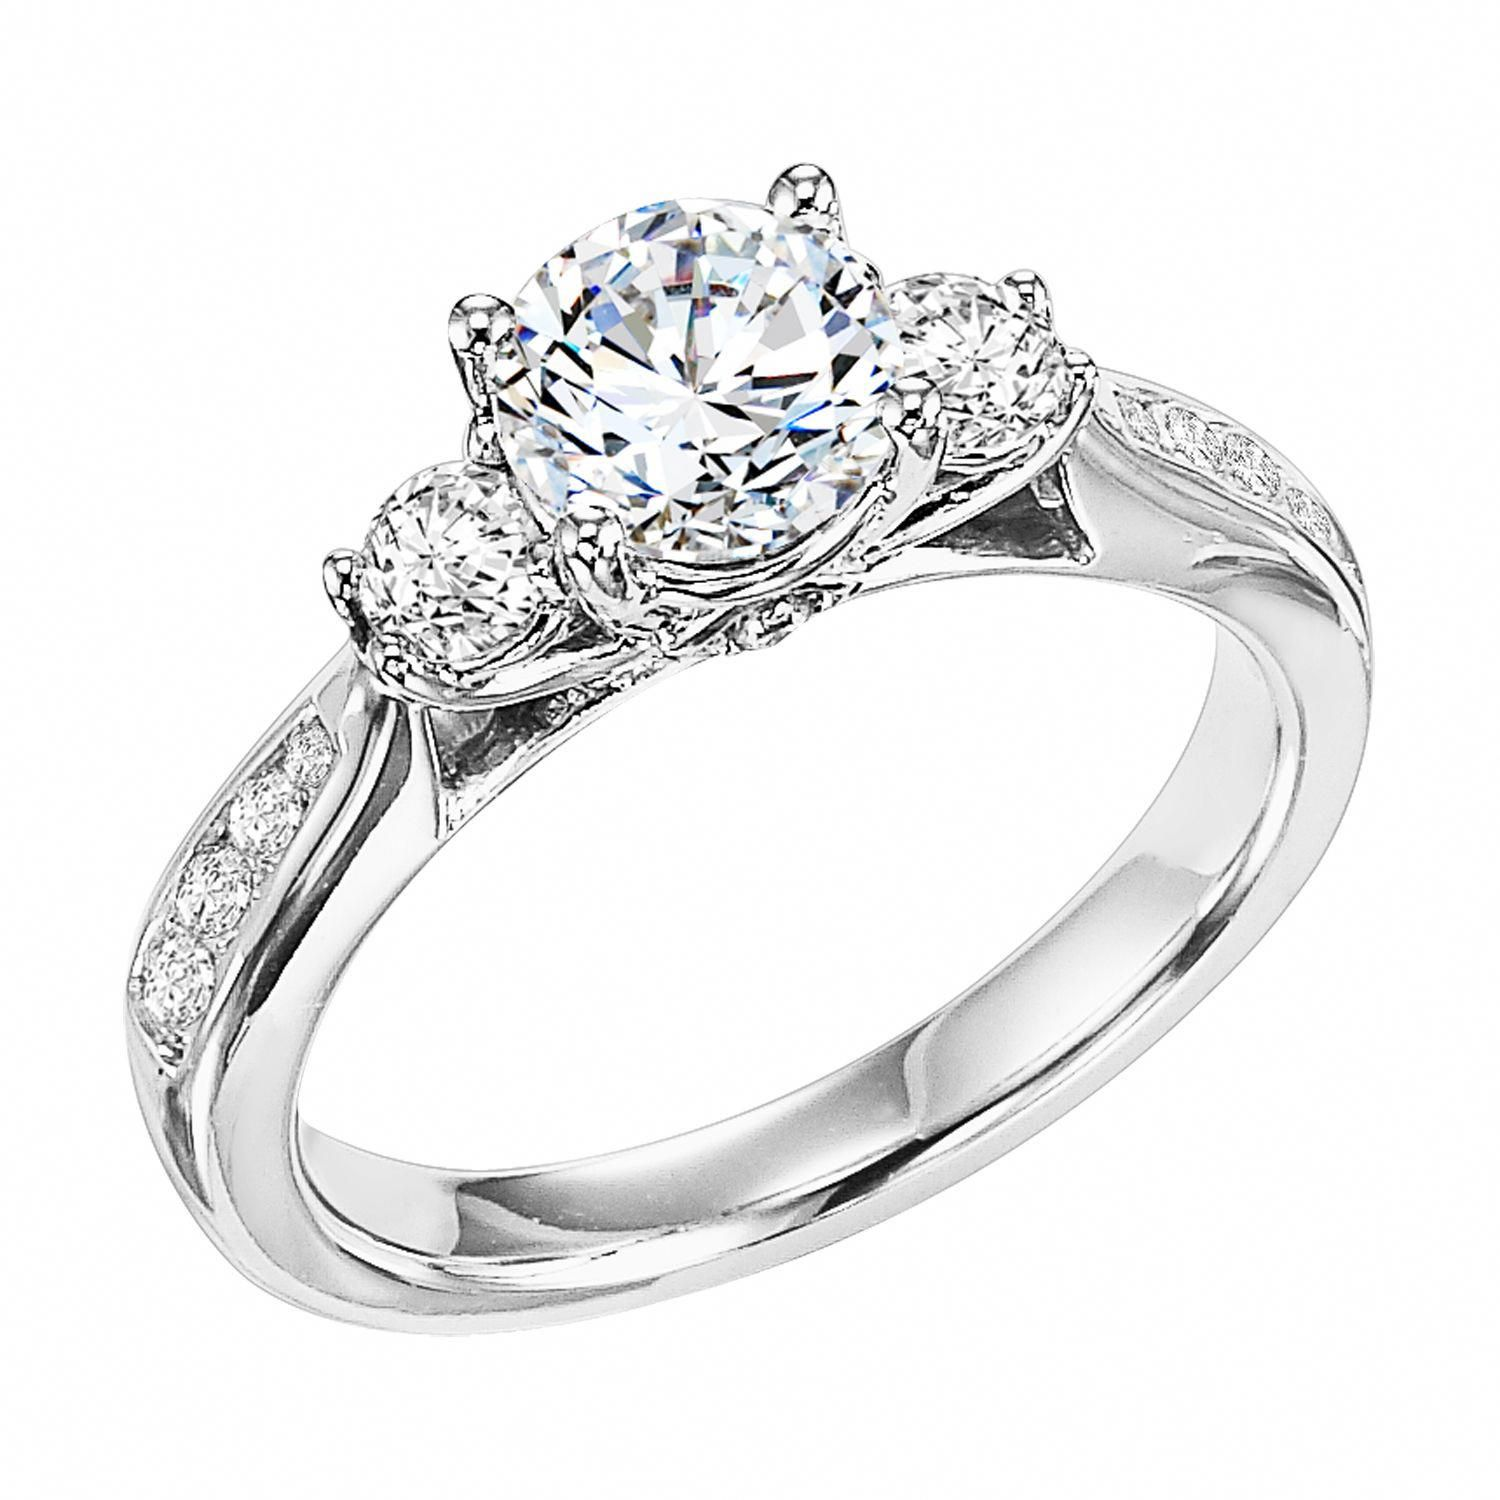 Solitaire Diamond Rings On Sale Now